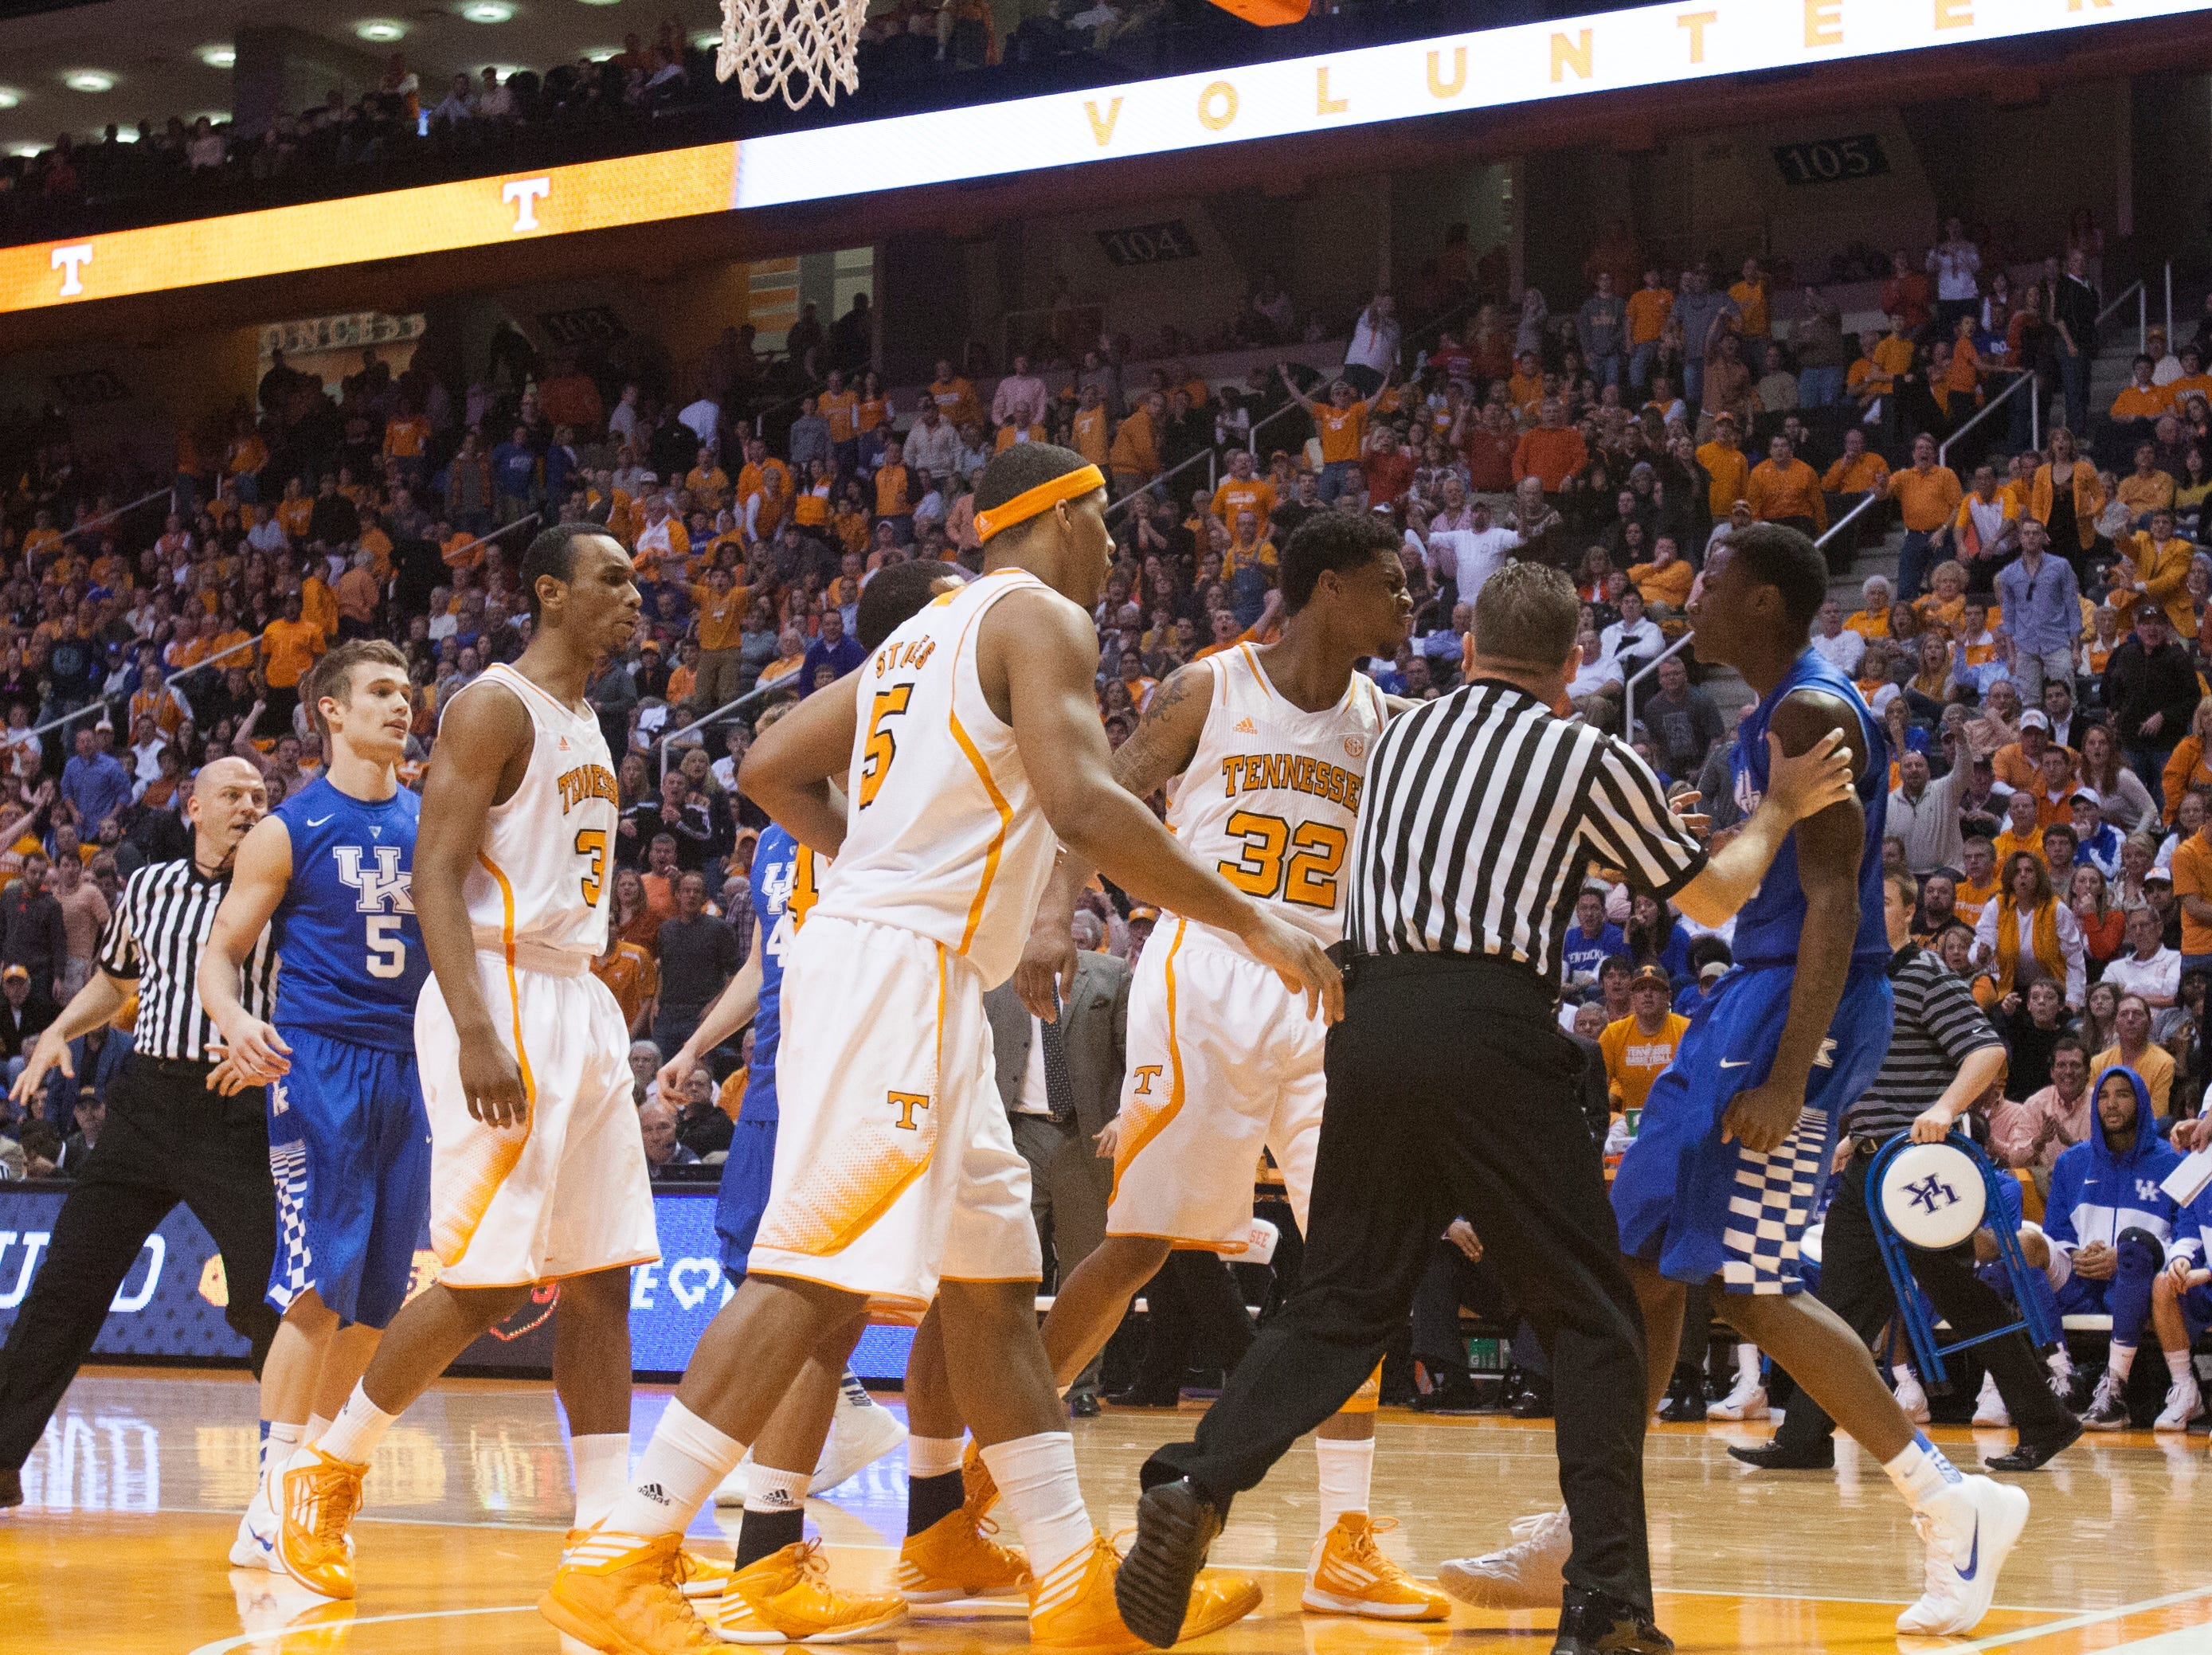 Tennessee guard D'Montre Edwards (32) and Kentucky guard Archie Goodwin (10) exchange words during the second half at Thompson-Boling Arena Saturday, Feb. 16, 2013. A technical foul was called on Goodwin and Tennessee's Brandon Lopez after the exchange. Tennessee won 88-58 over Kentucky.